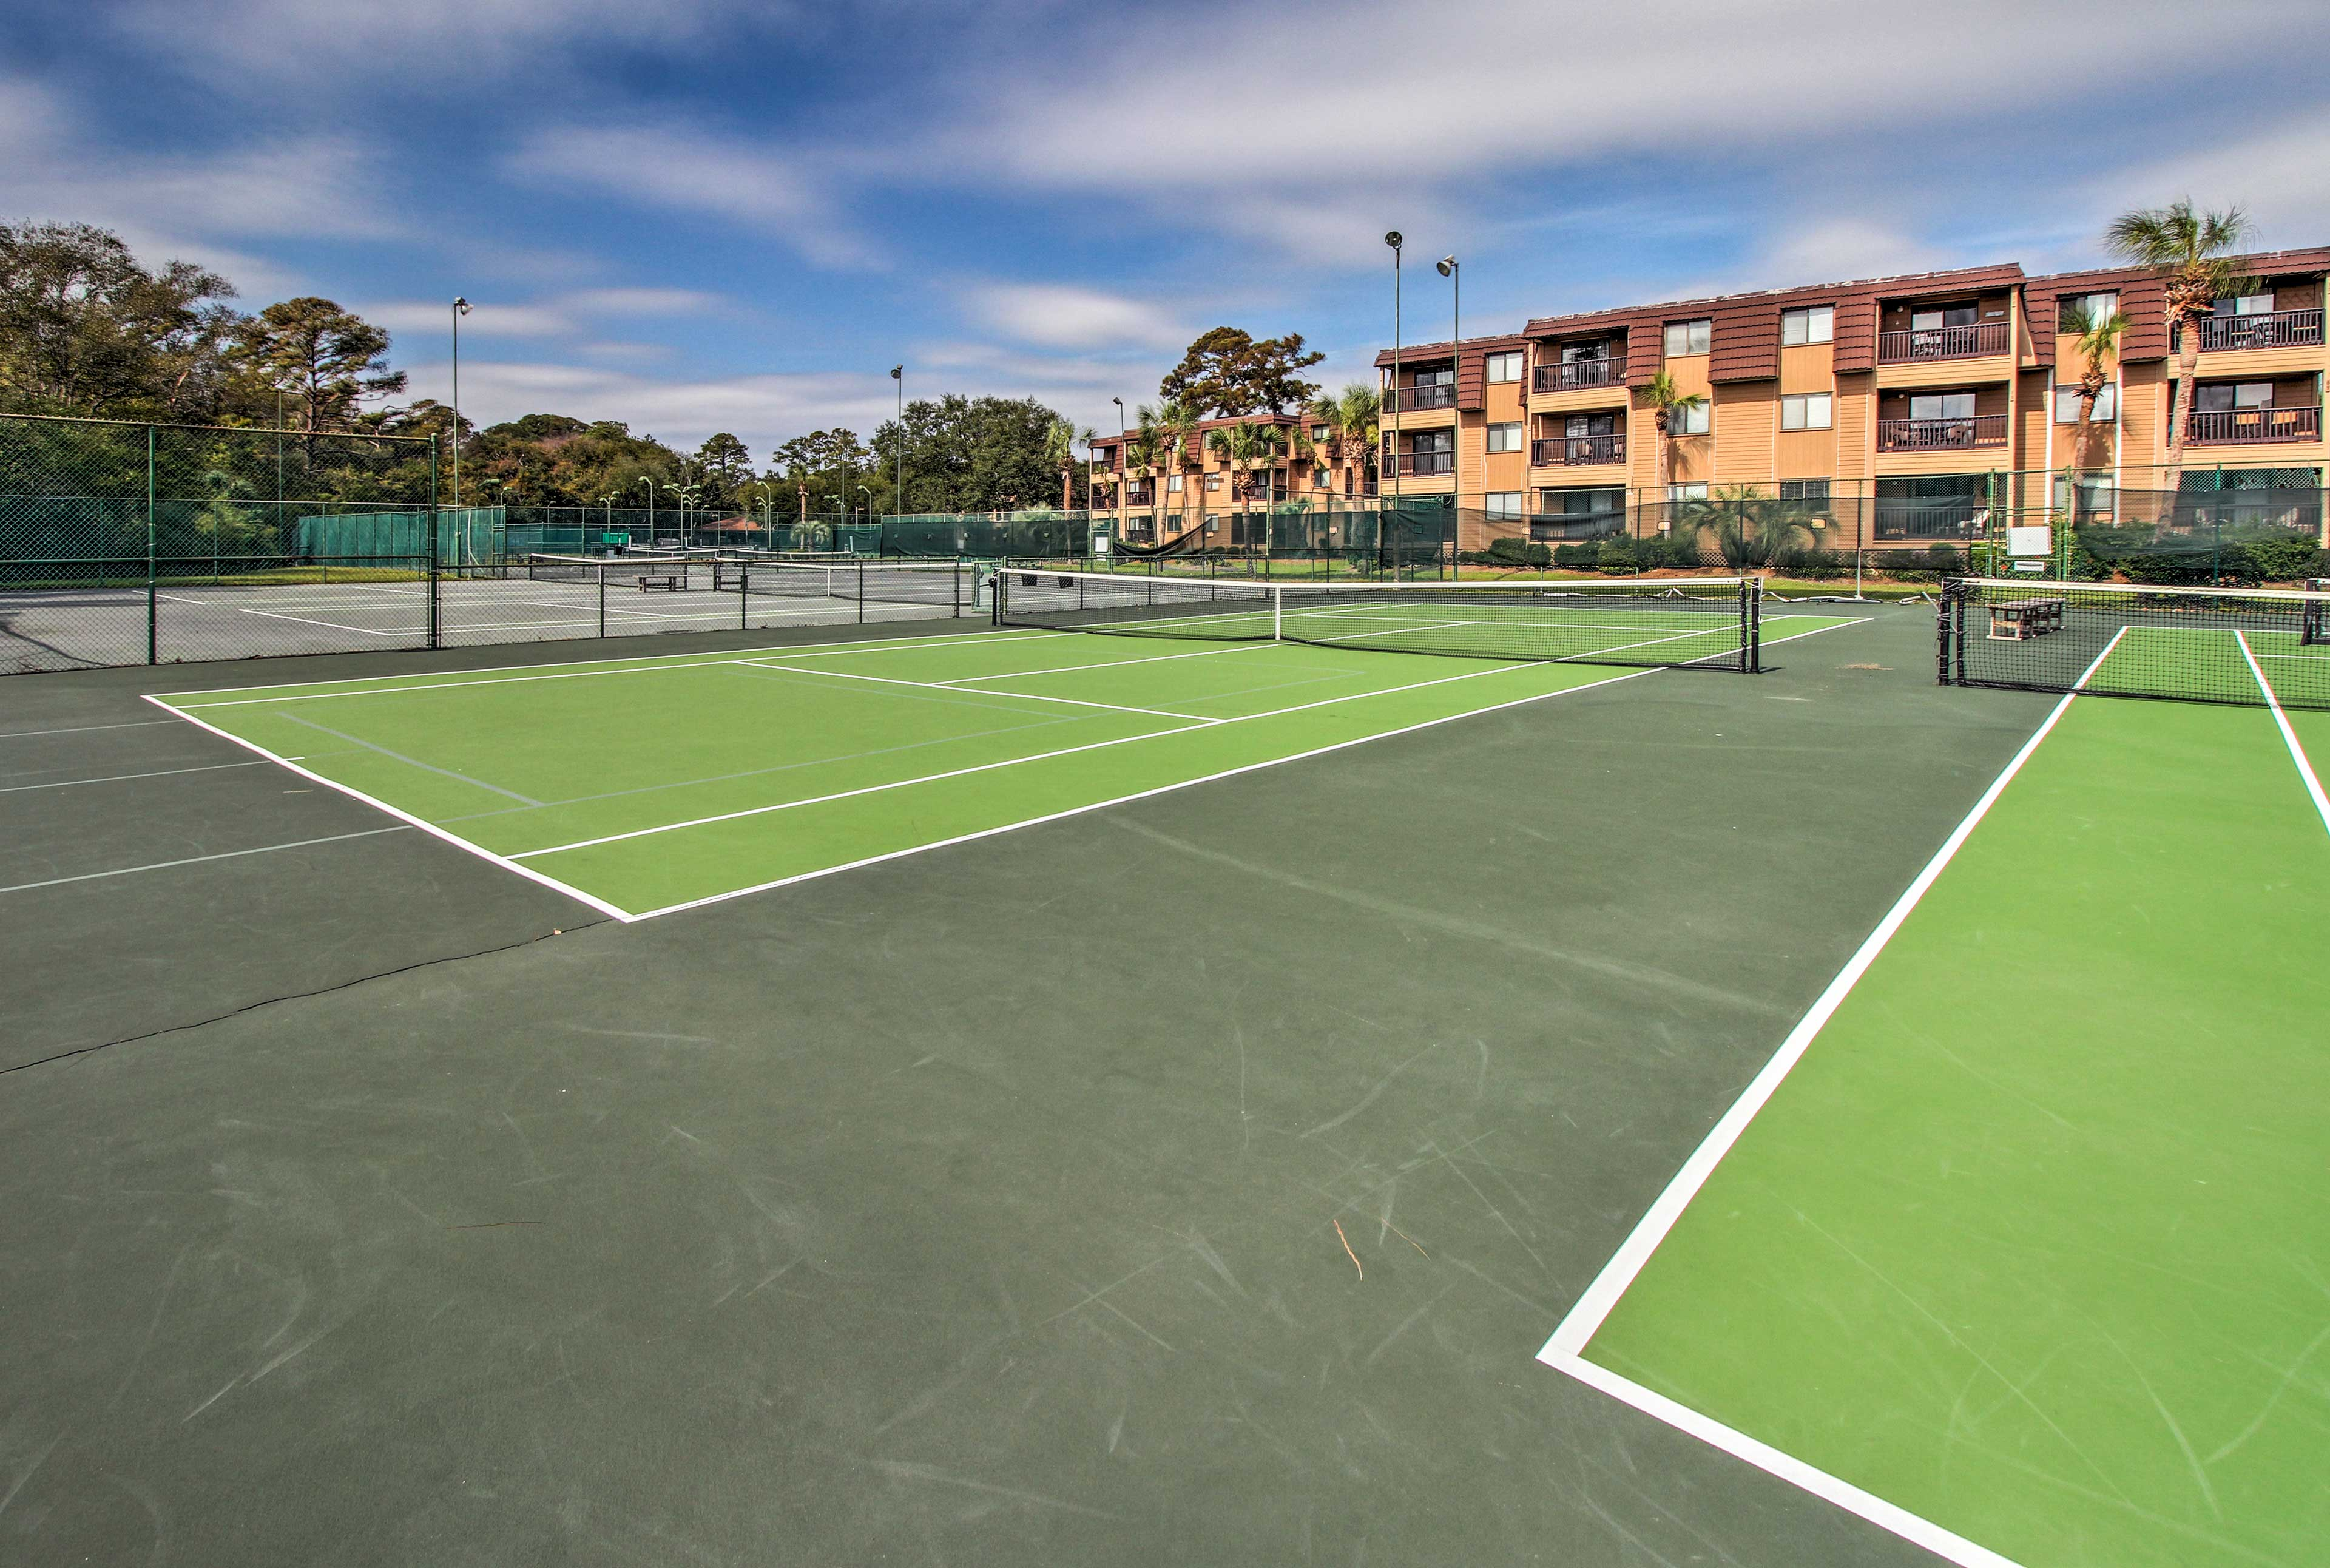 Play a friendly game of tennis.